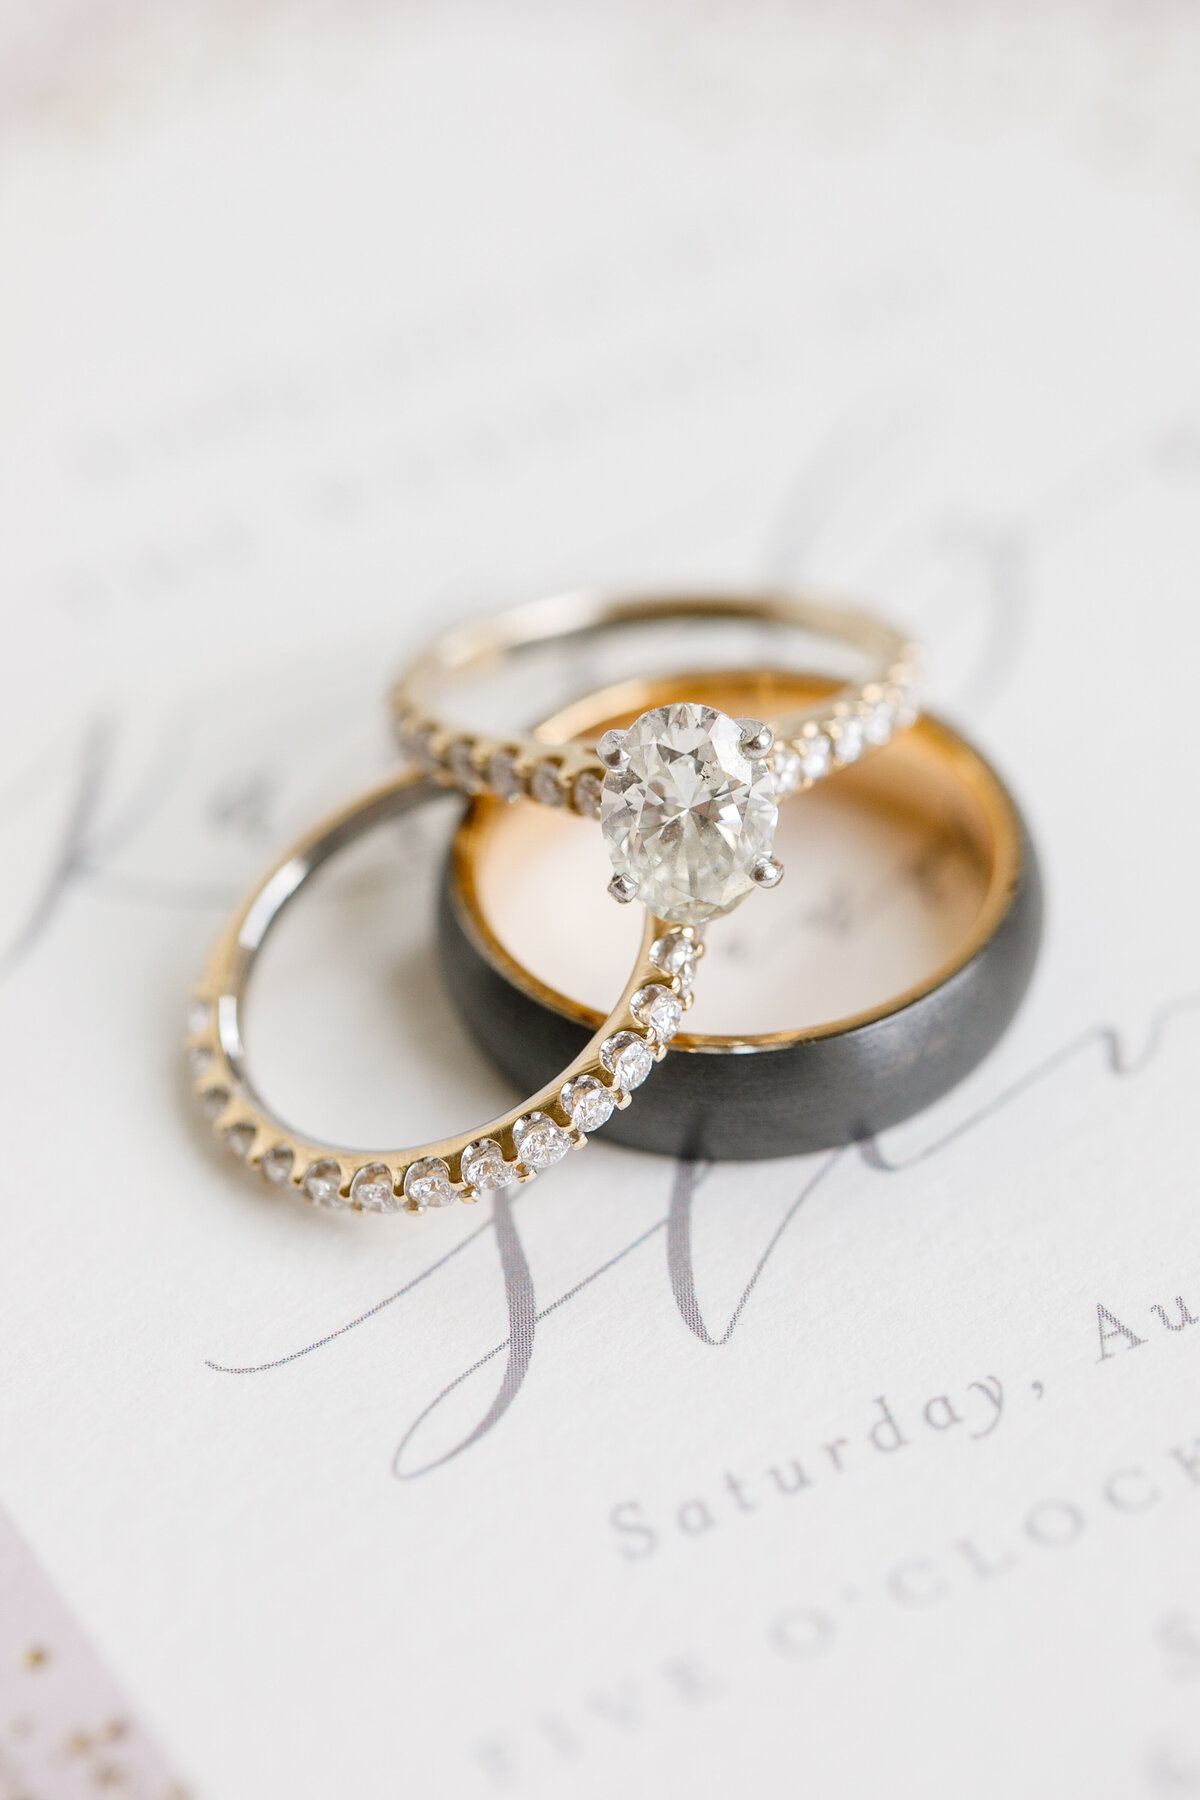 Tara Liebeck Photography Wedding Engagement Lifestyle Virginia Photographer Bright Light Airy109